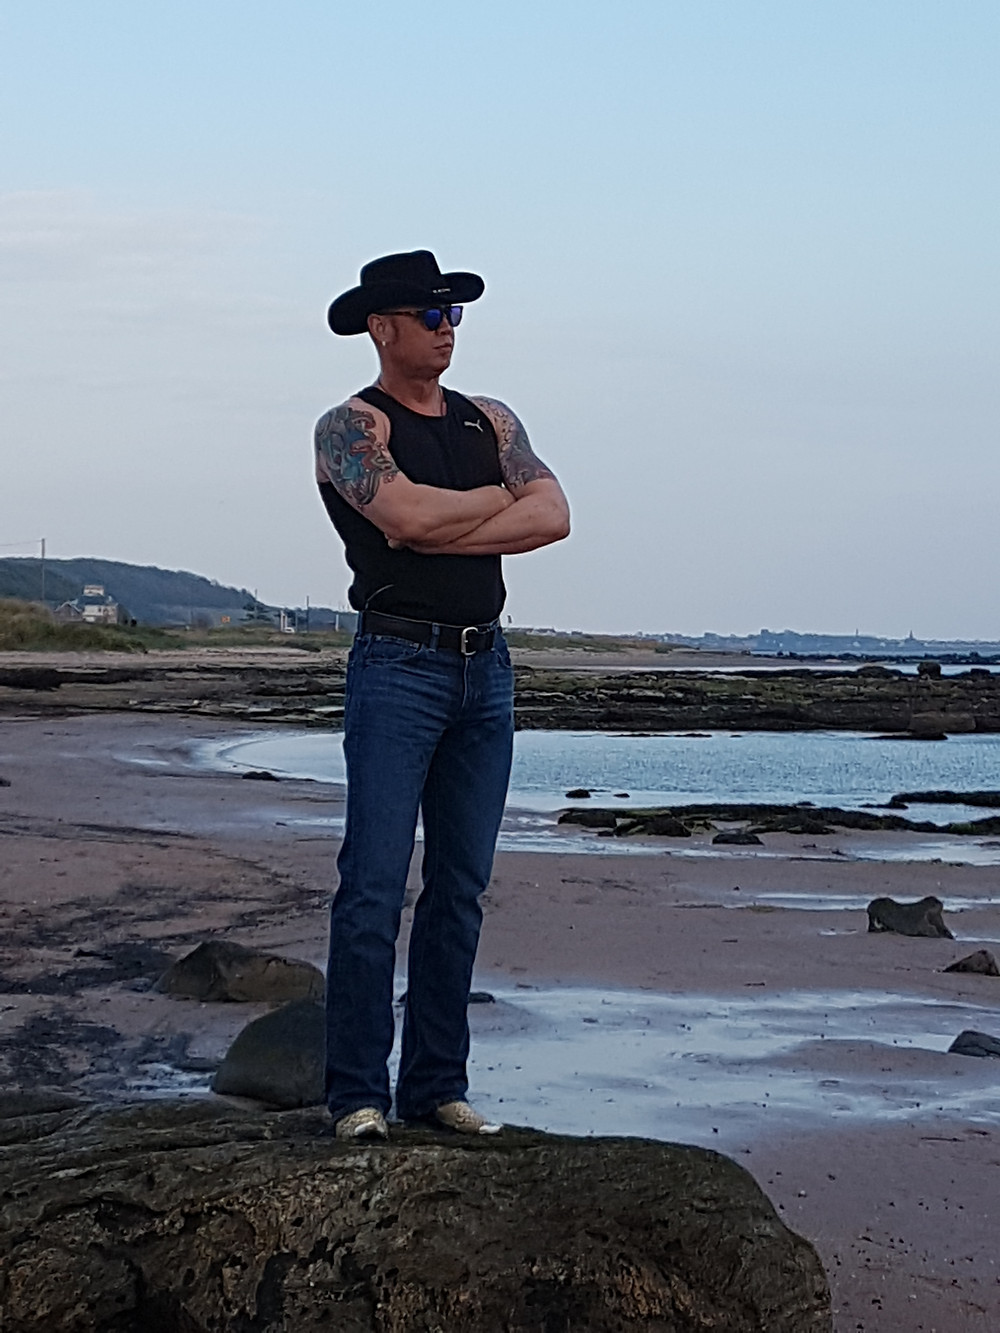 Bazz looking for inspiration on beach in Scotland